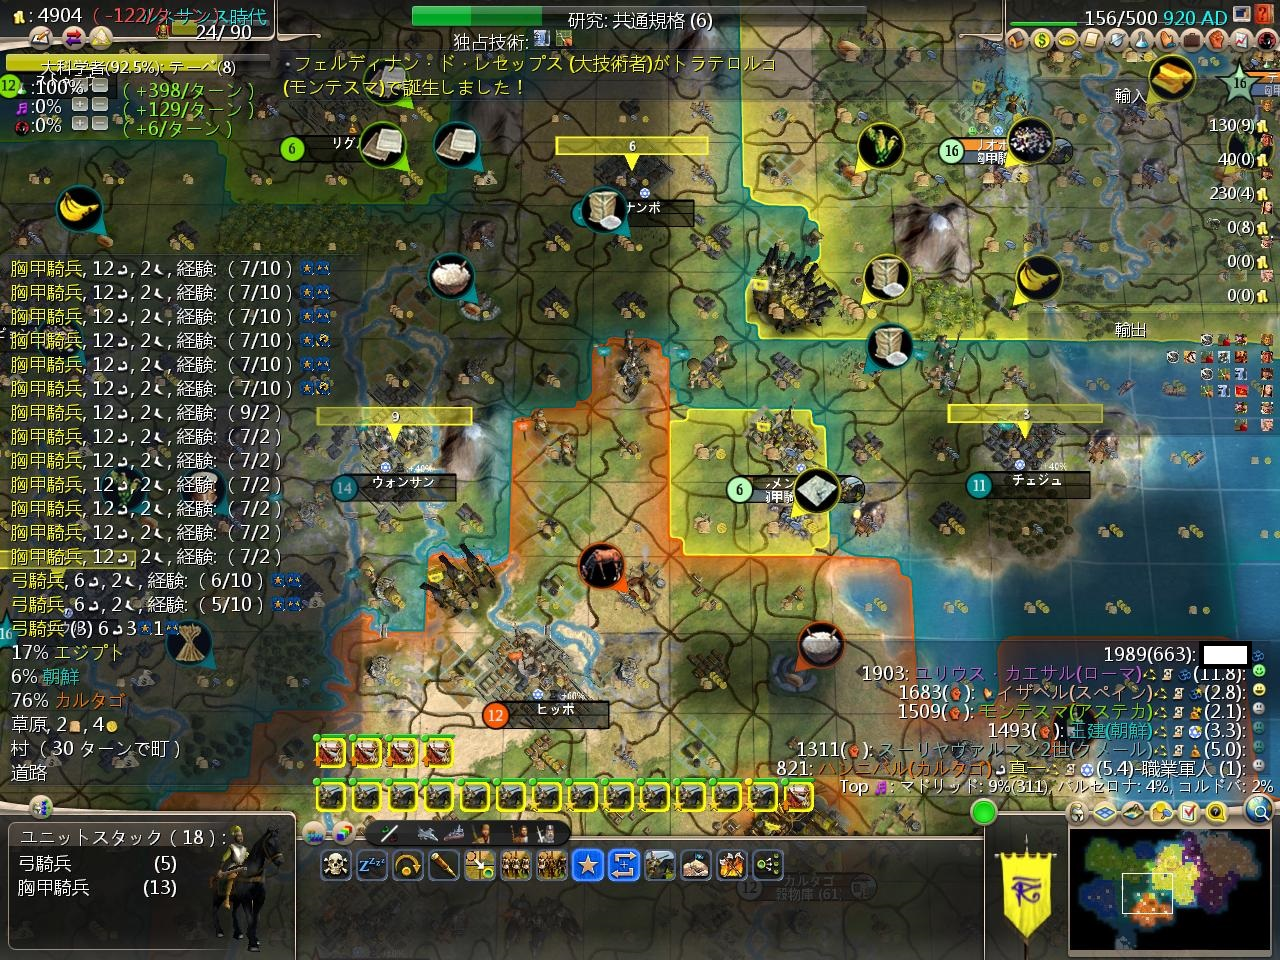 Civ4ScreenShot2212.JPG